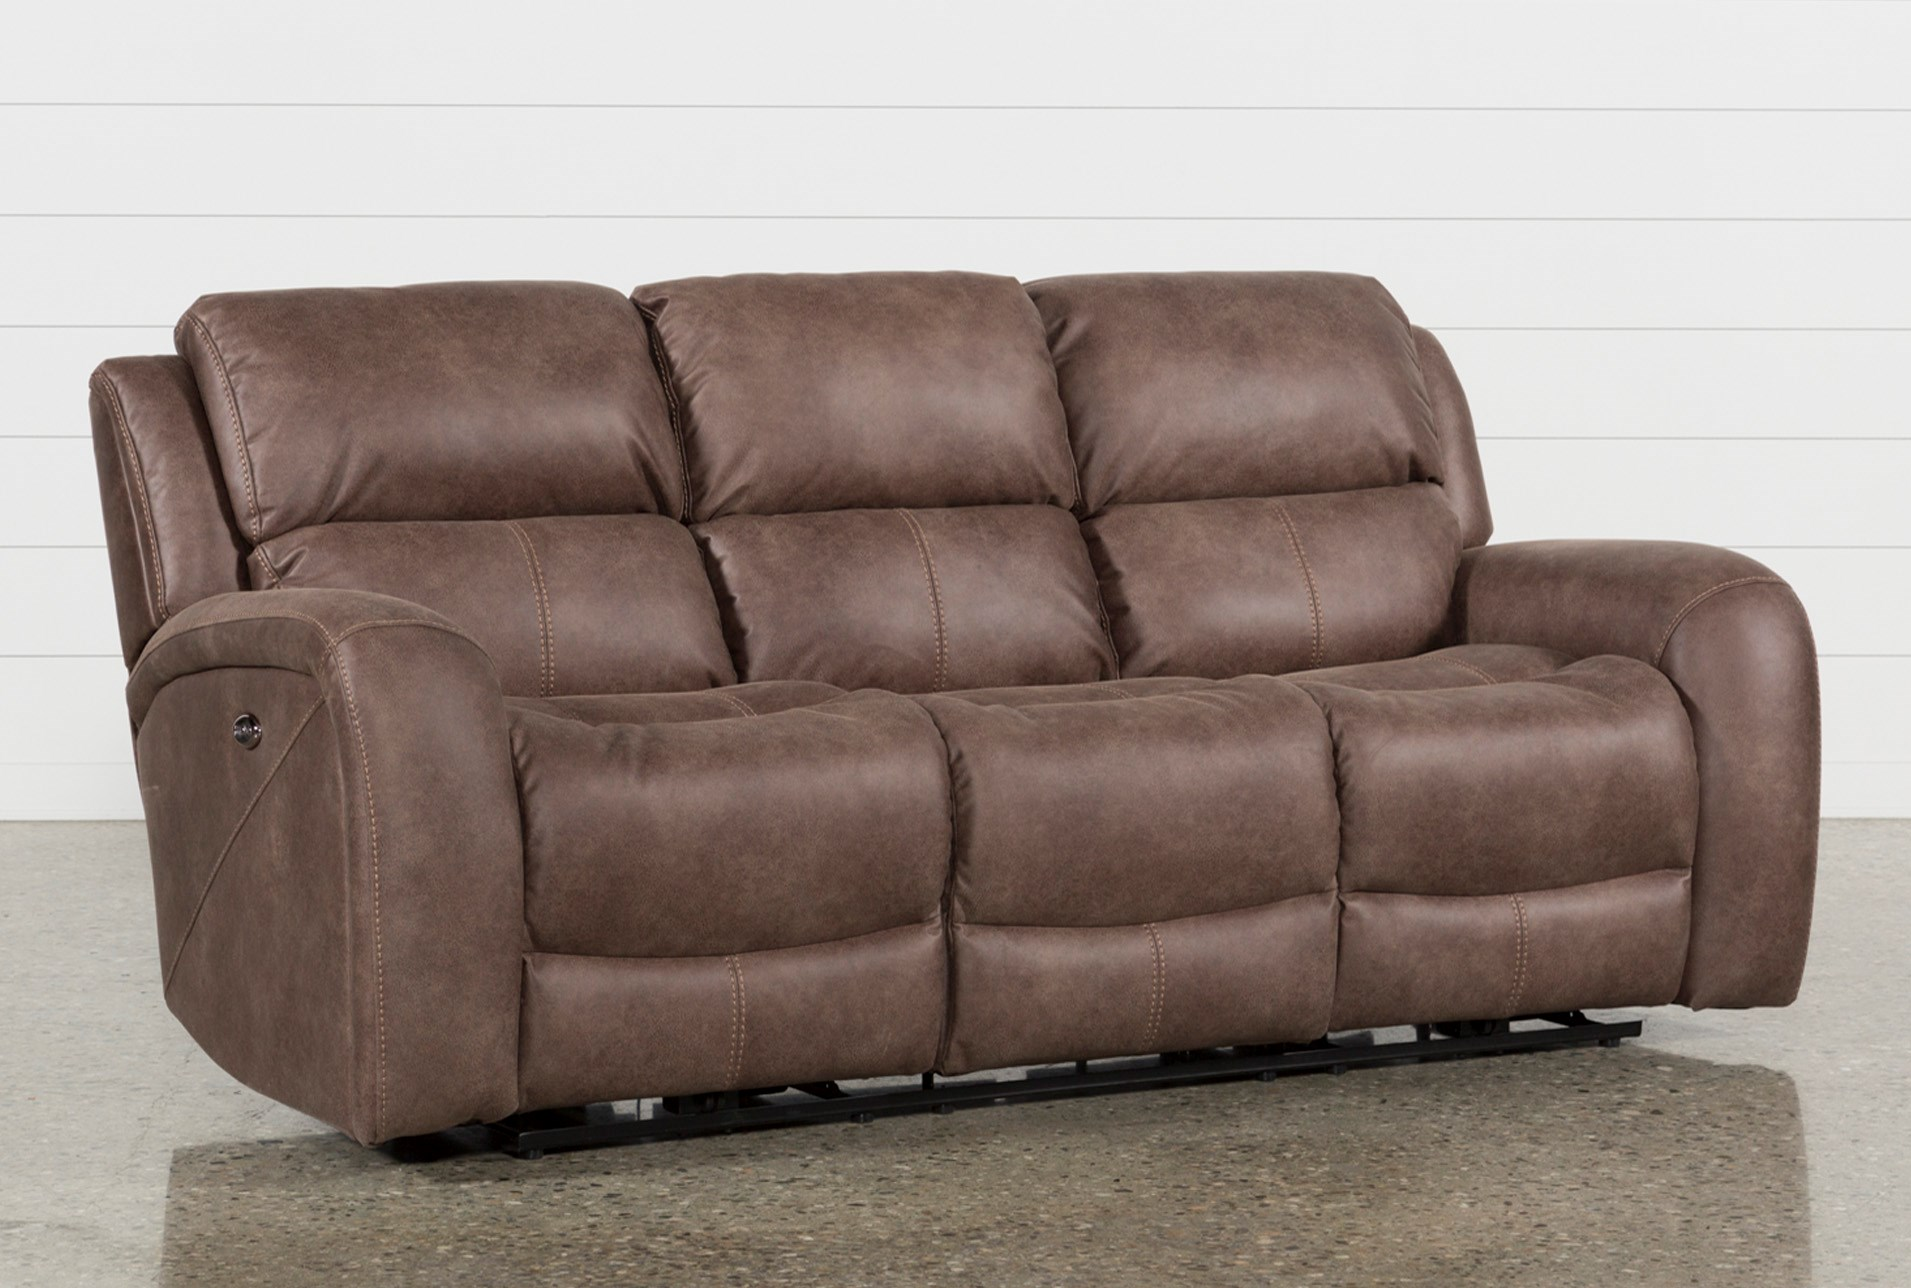 Deegan Bark Power Reclining Sofa